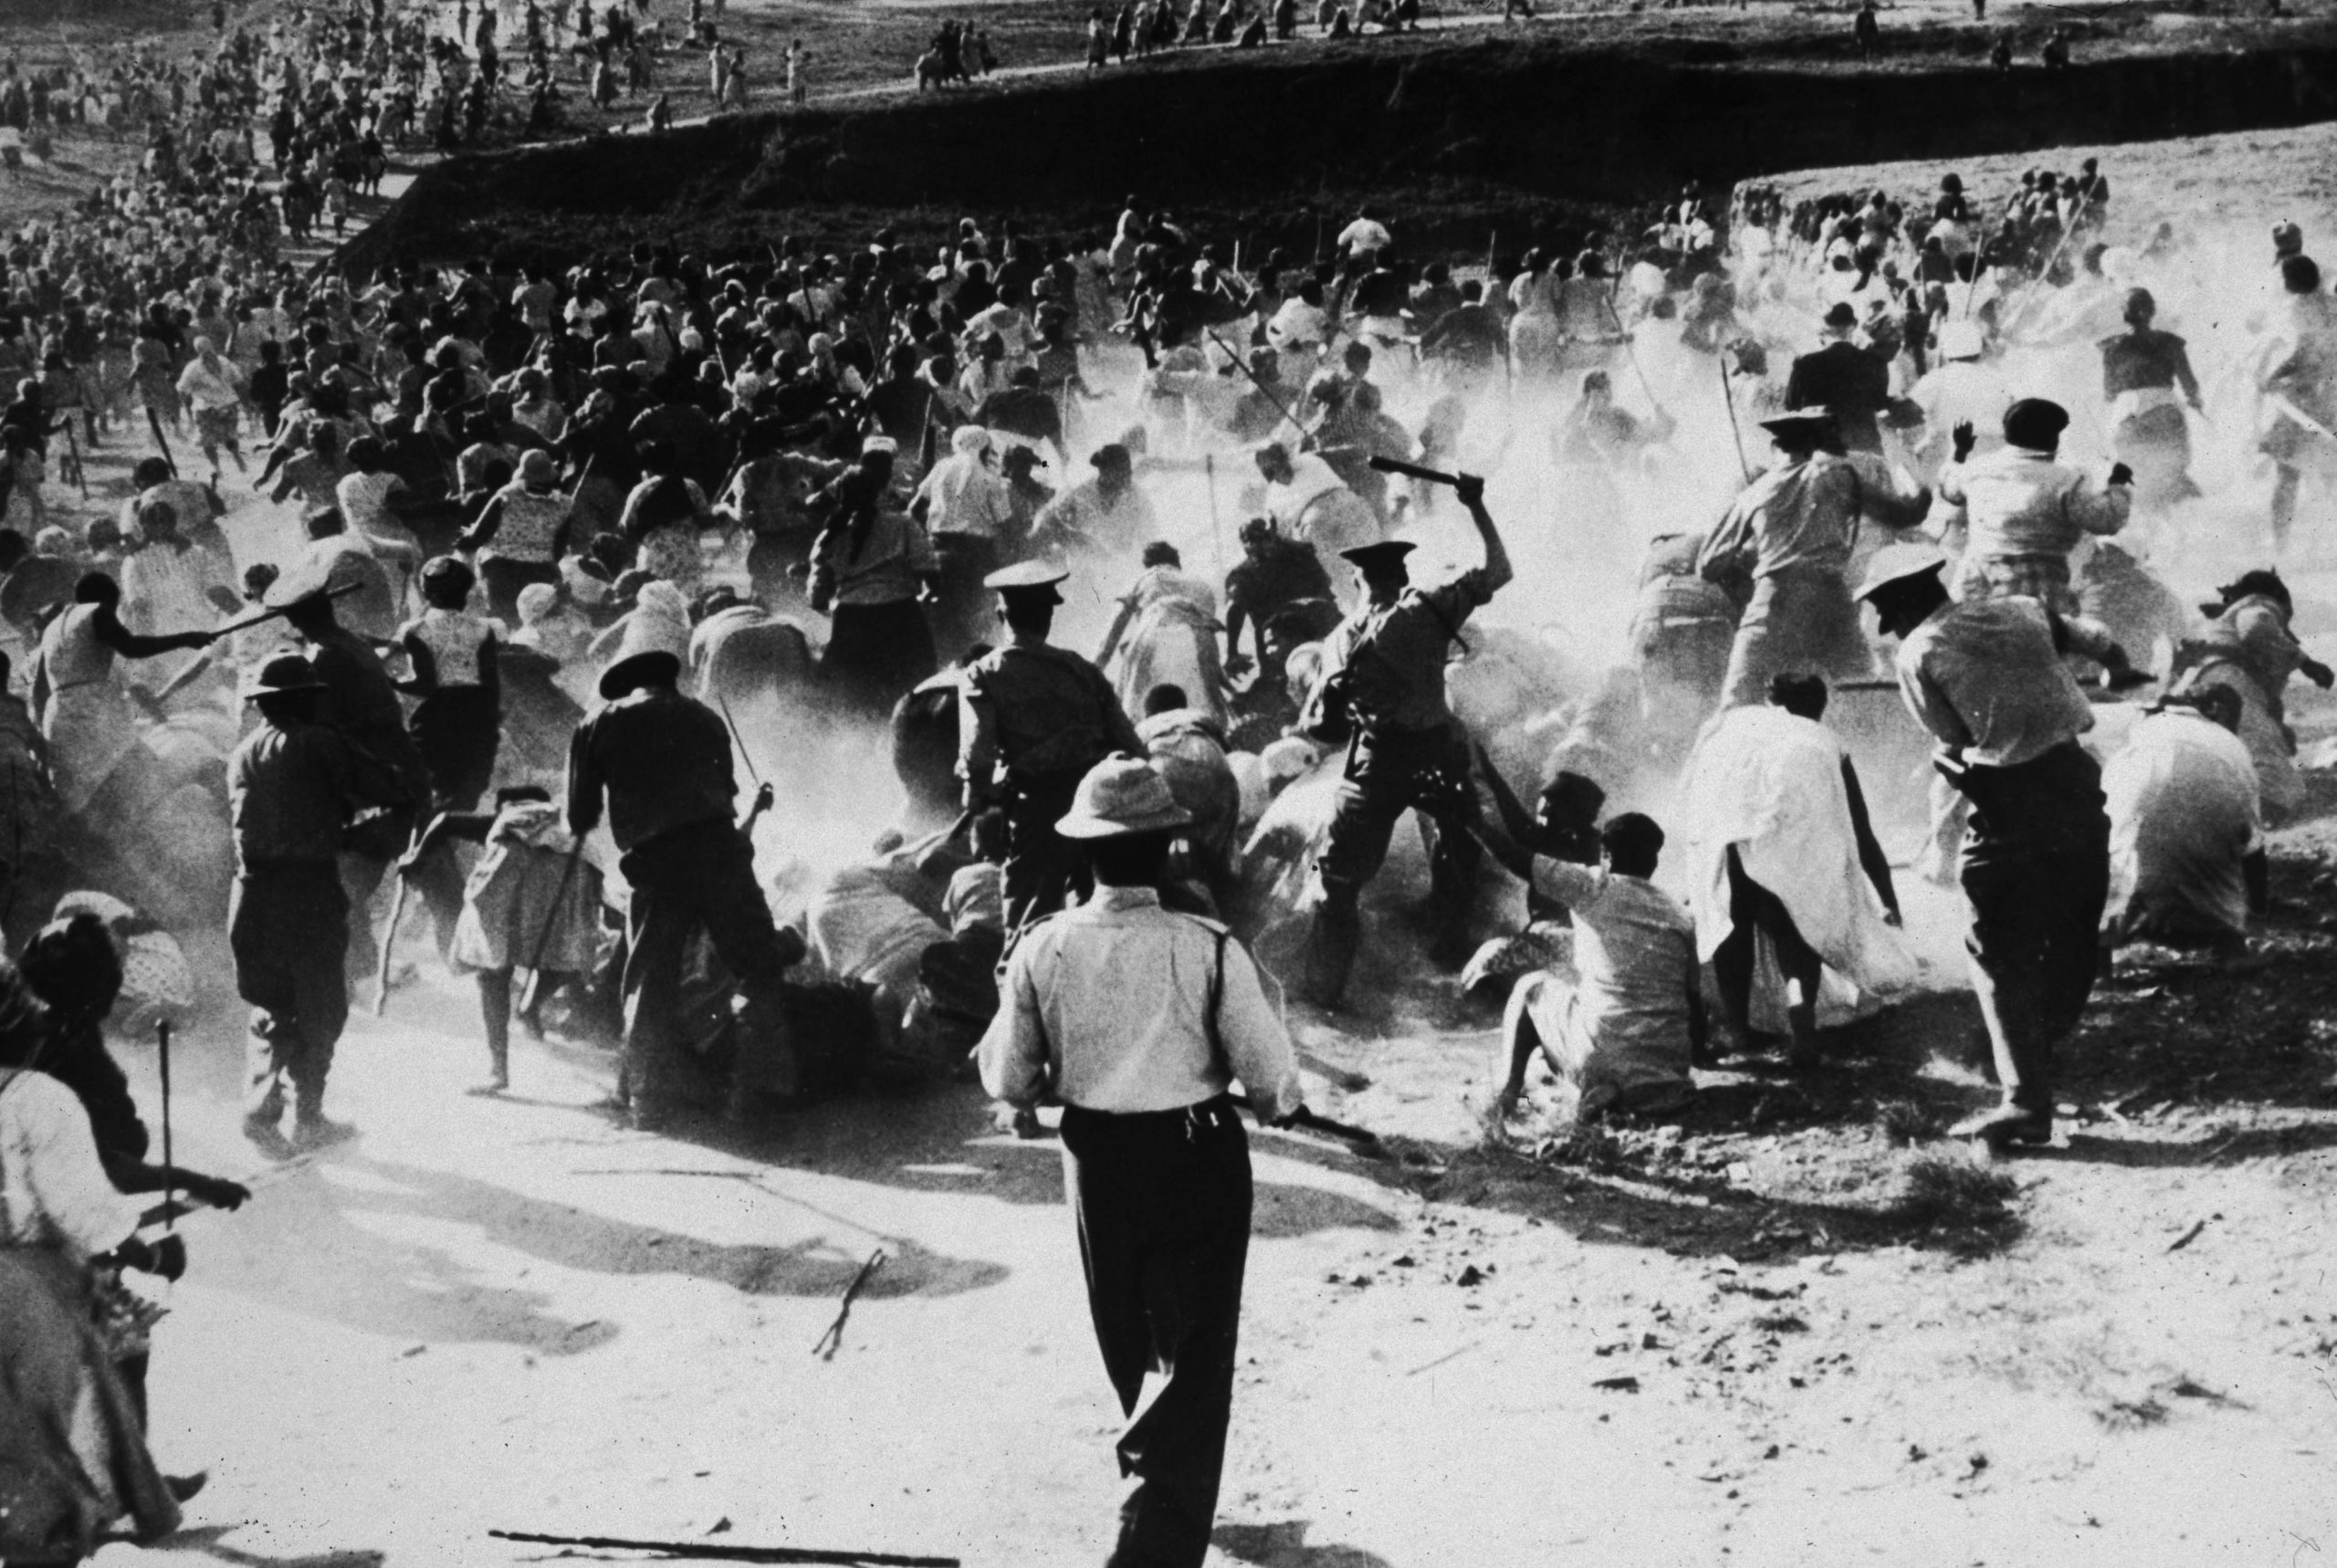 1959: South African police officers beat black women with clubs during a protest against apartheid in Durban. (Photograph by Hulton Archive/ Getty Images)